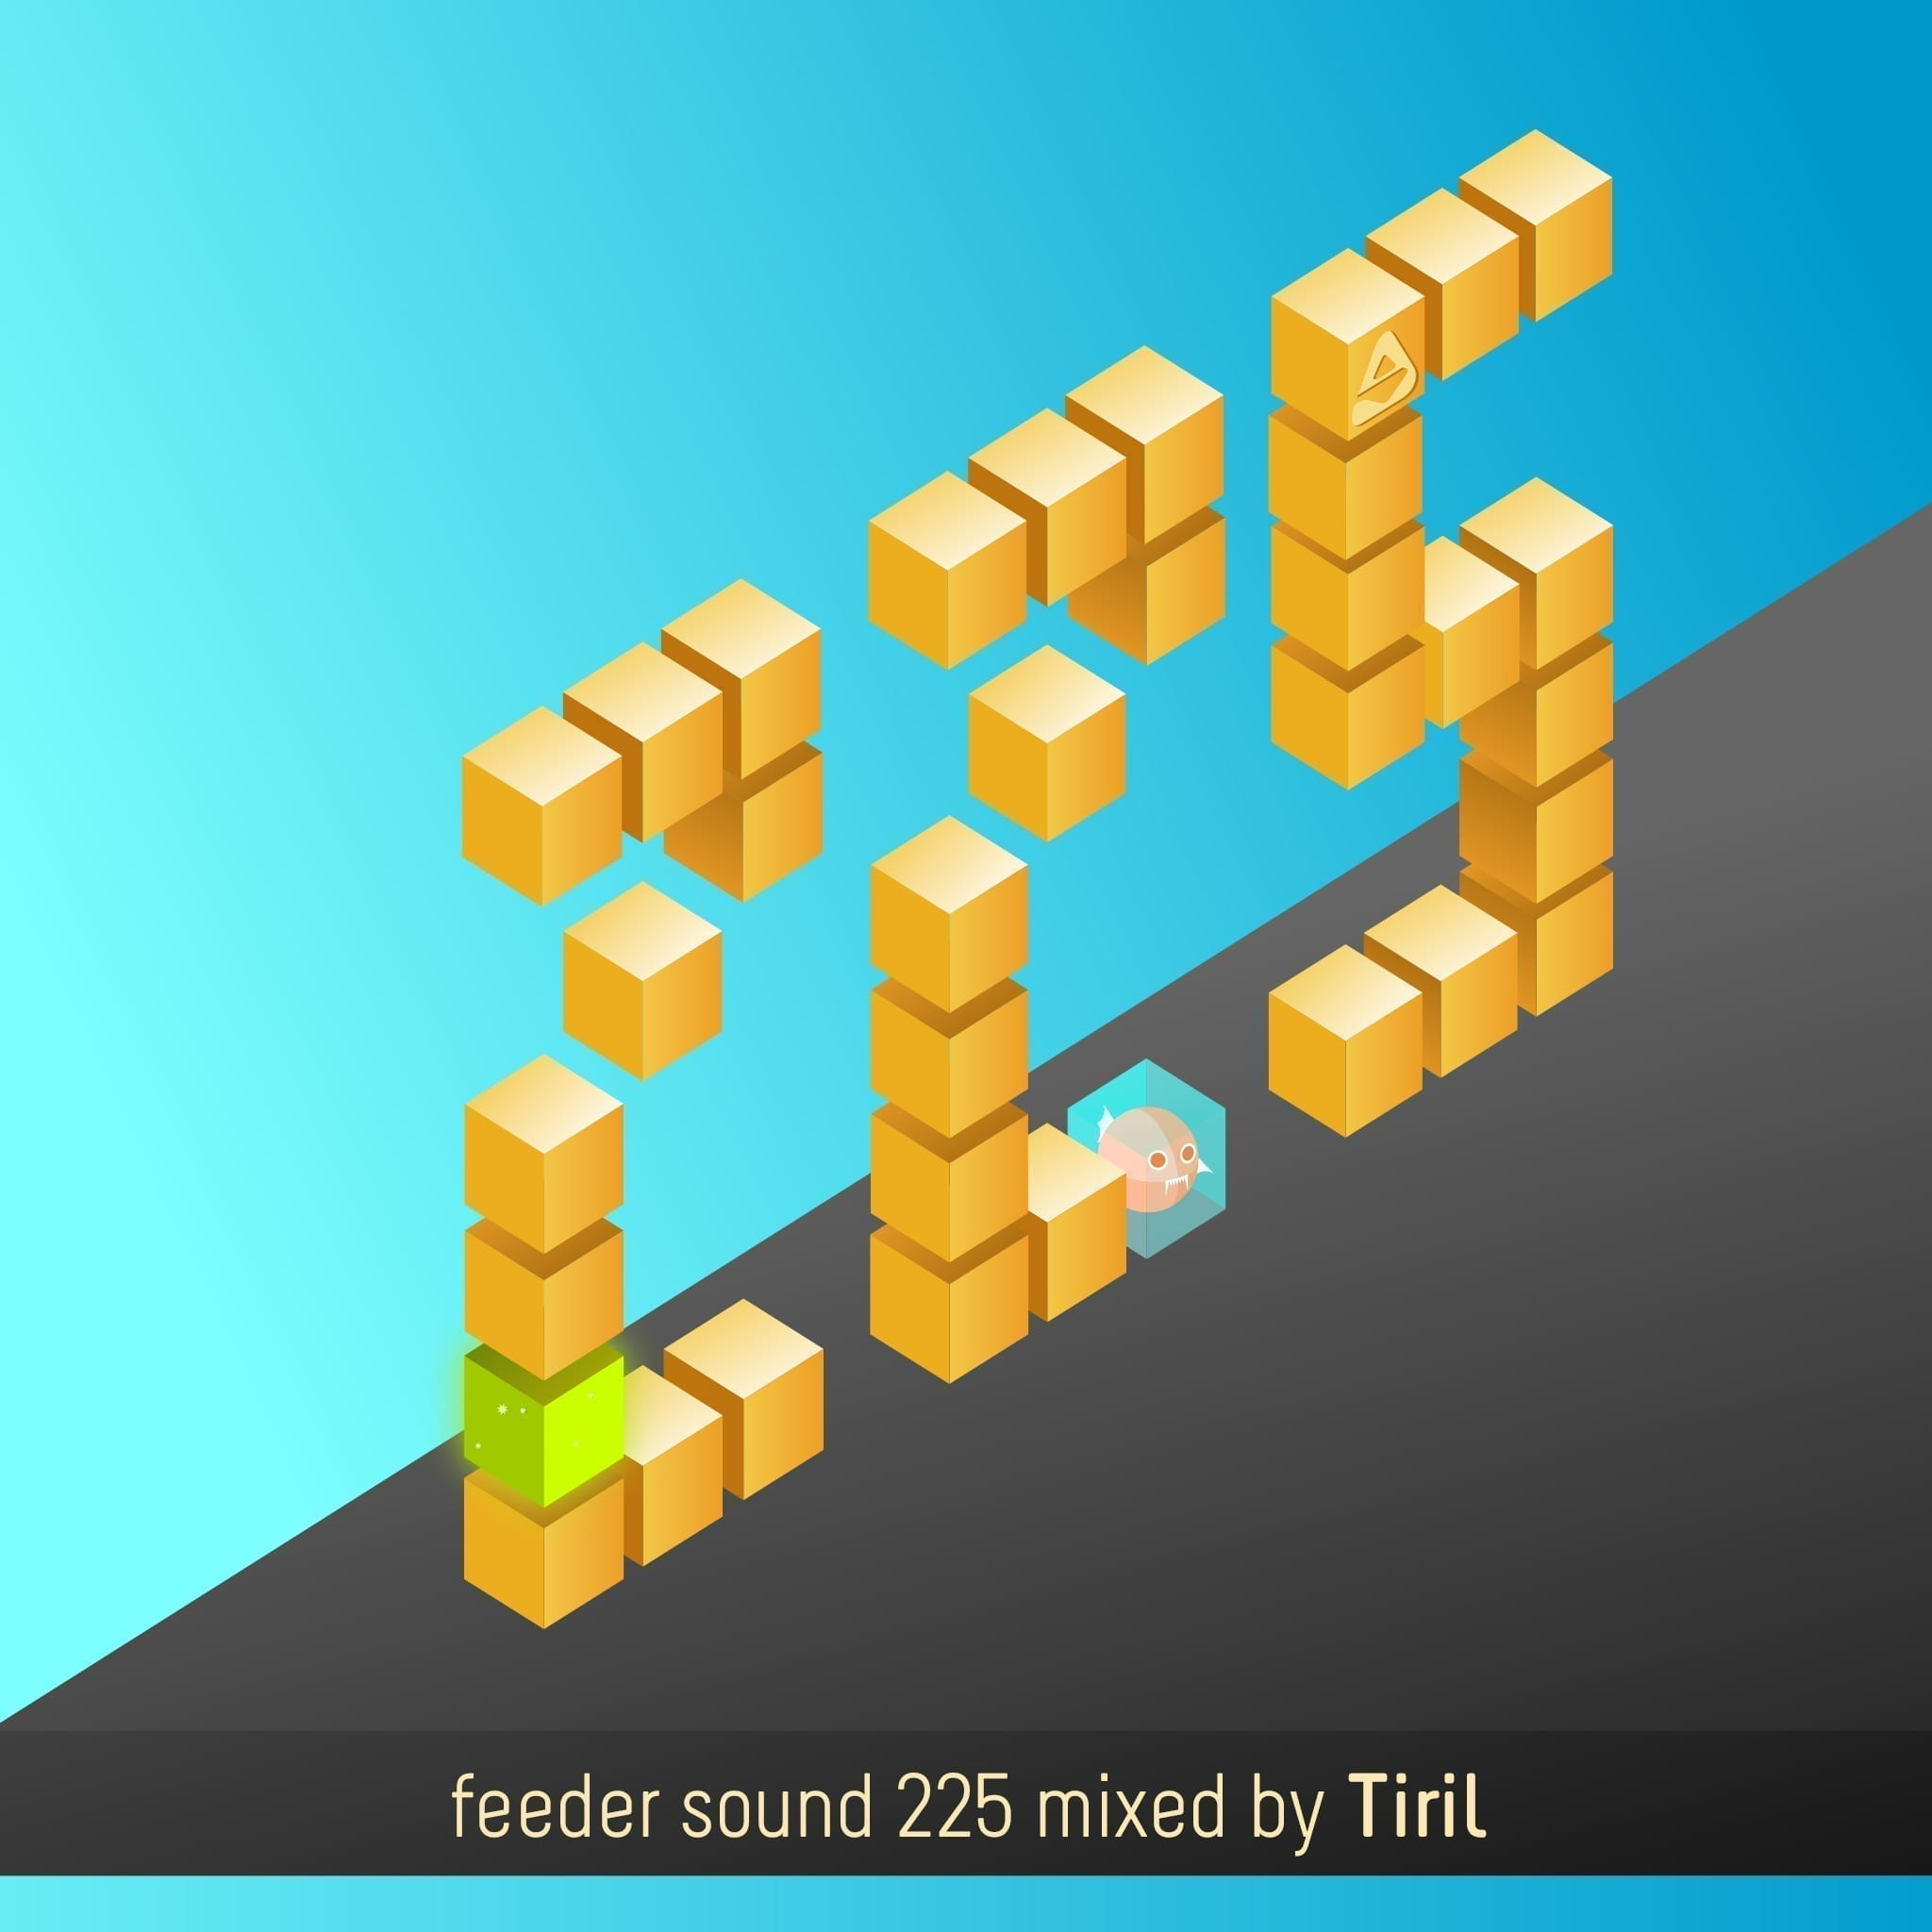 feeder sound 225 mixed by Tiril article-cover